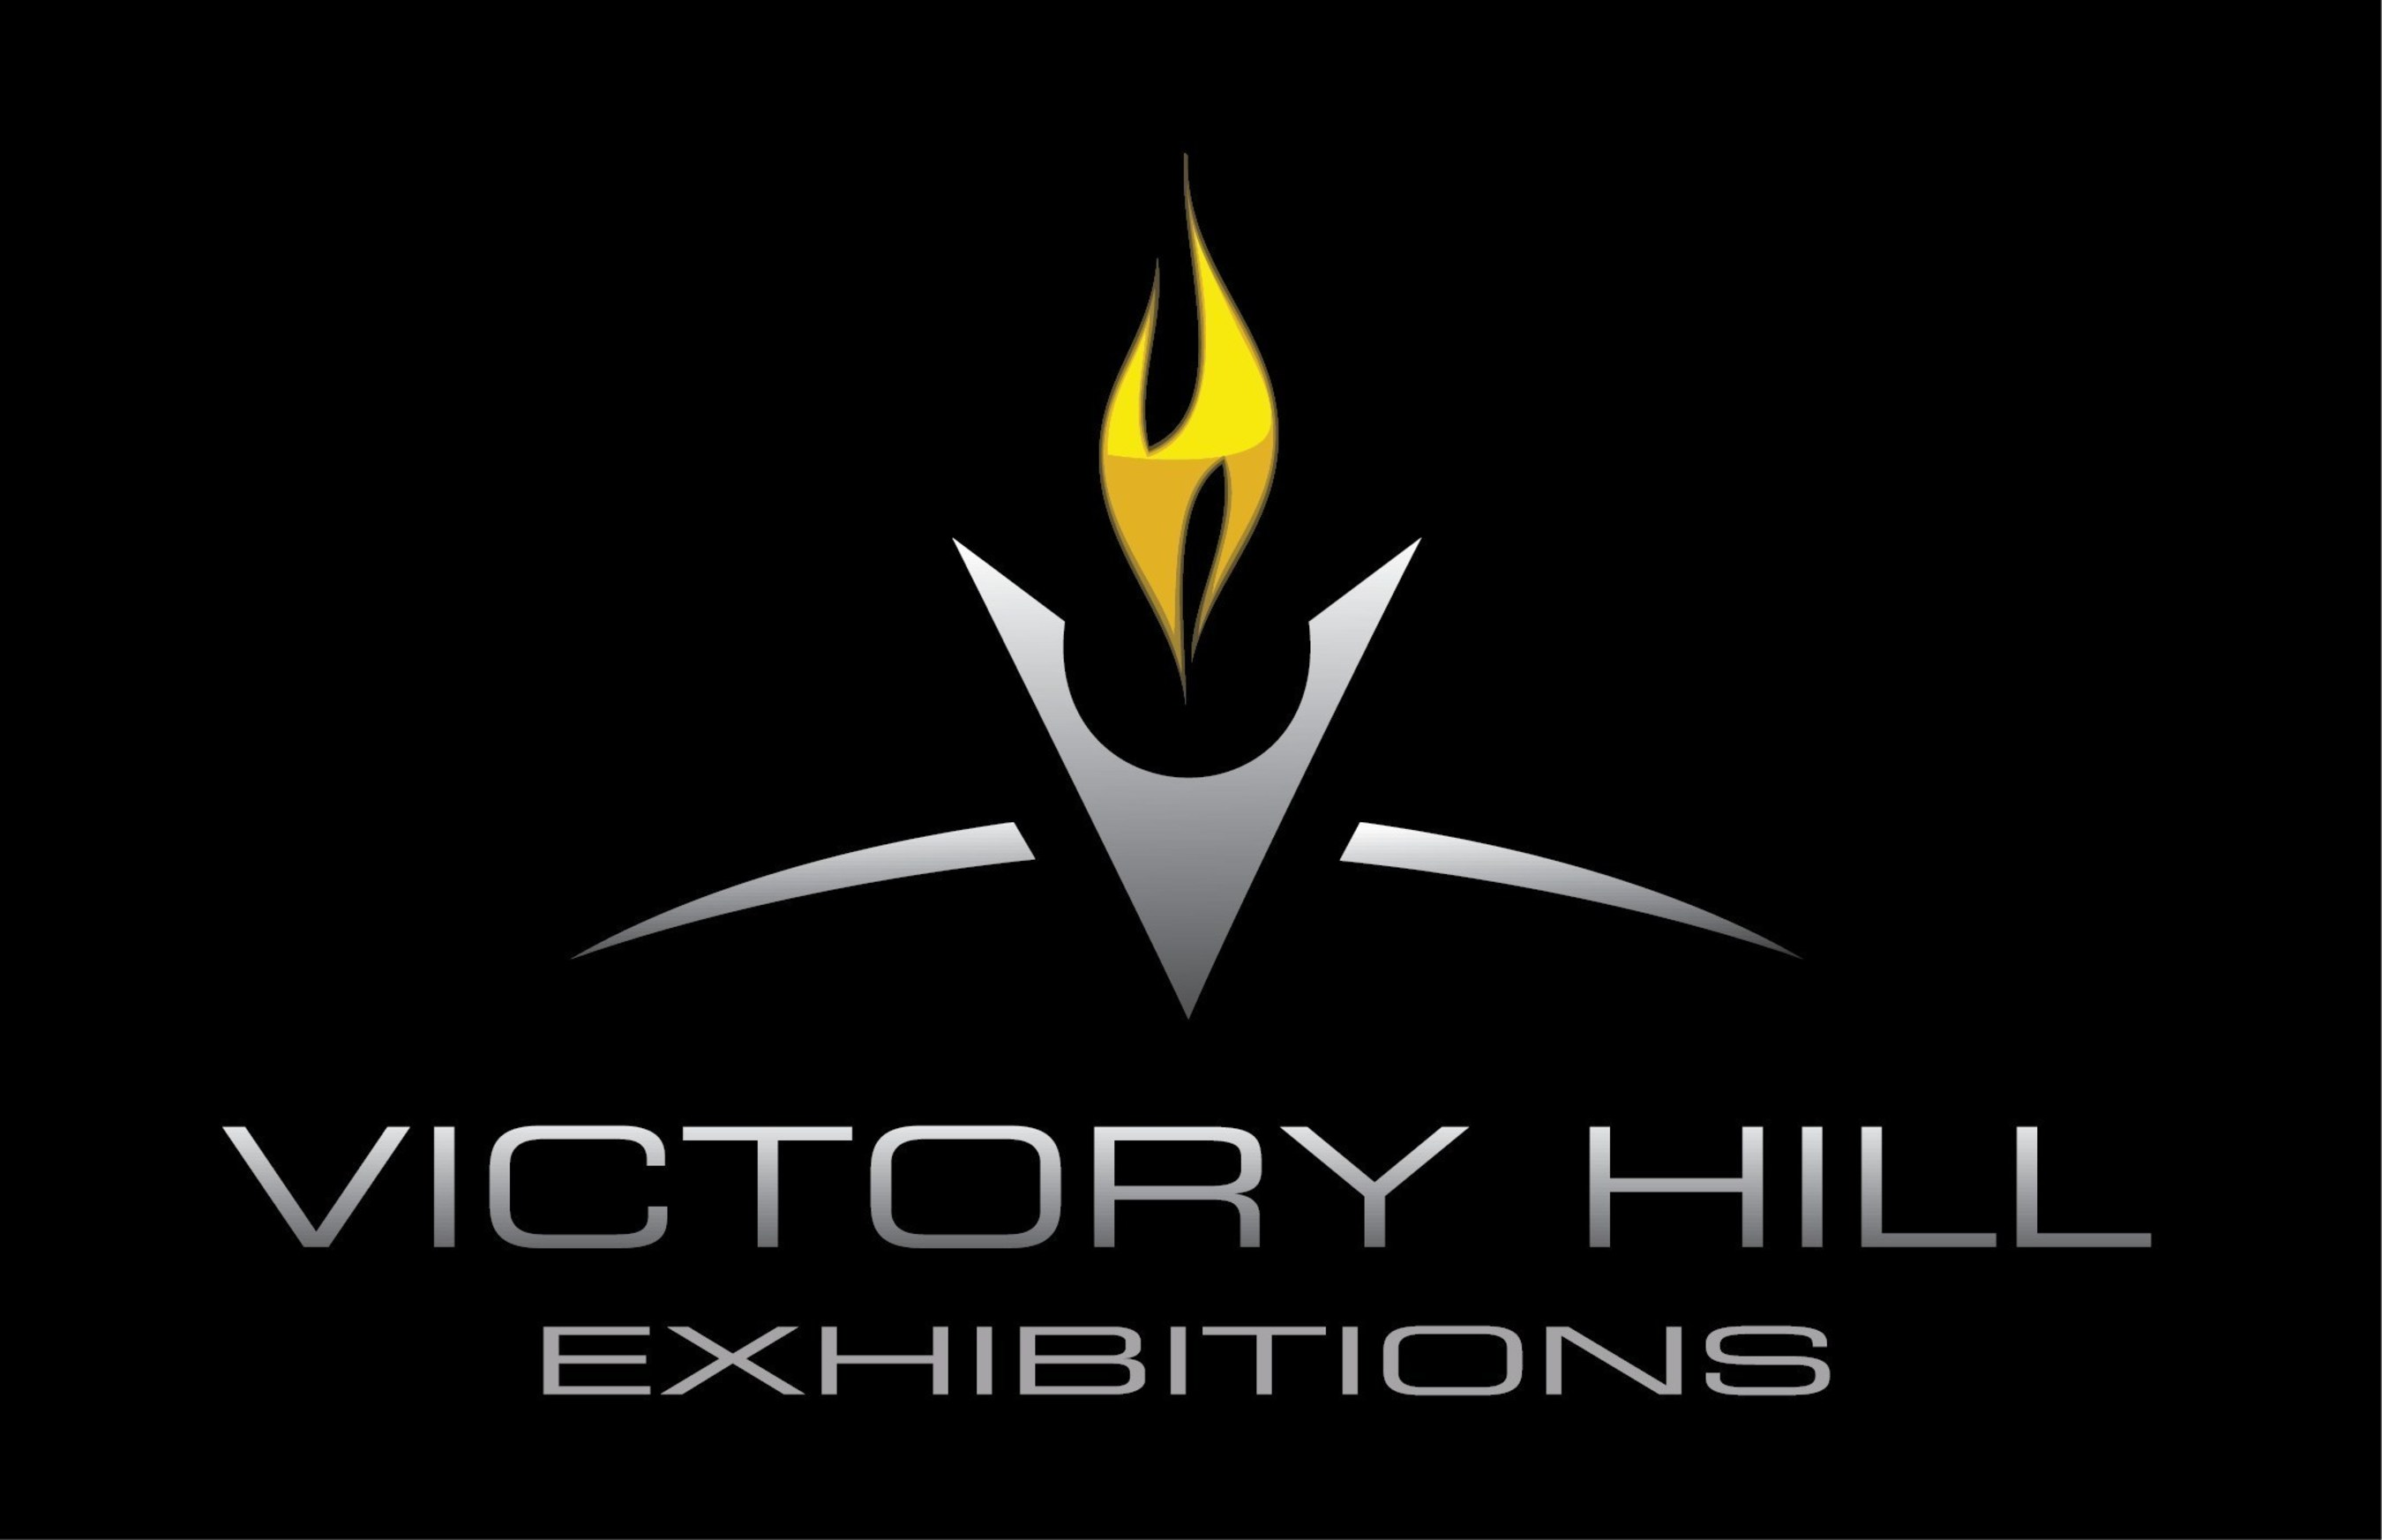 Victory Hill Exhibitions